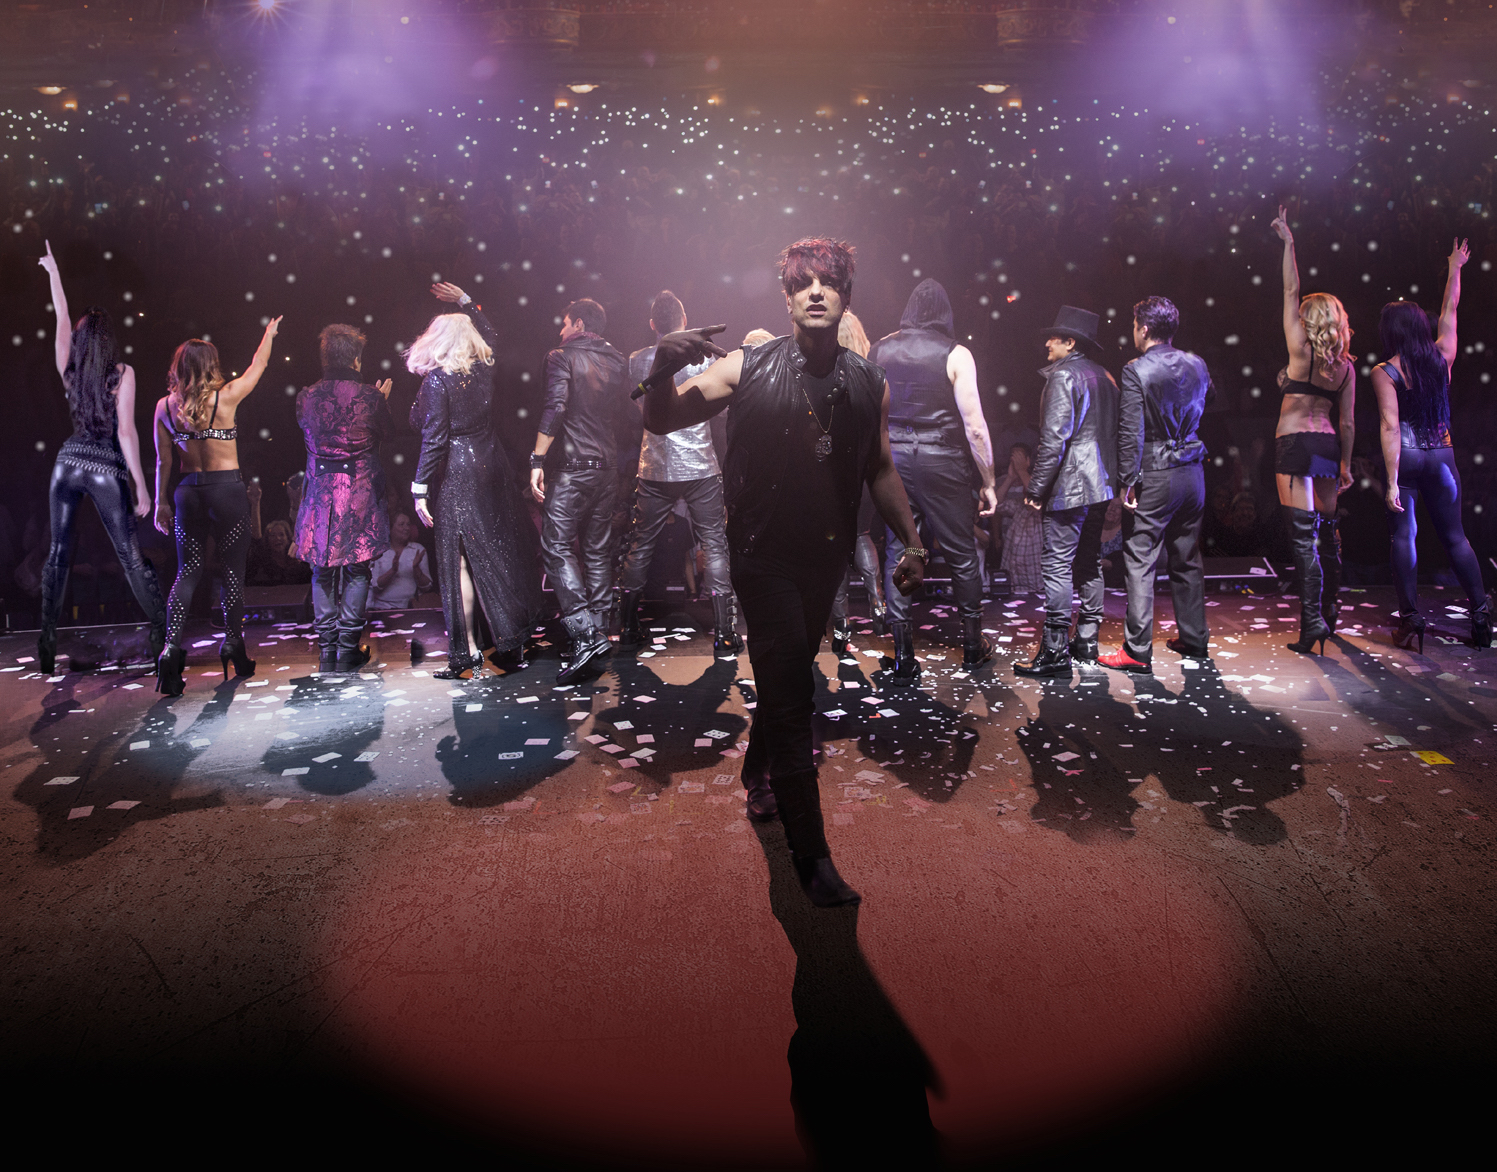 Illusionist Criss Angel, center, and the cast of The Supernaturalists will perform two shows Jan. 16 at the State Theatre in Easton.